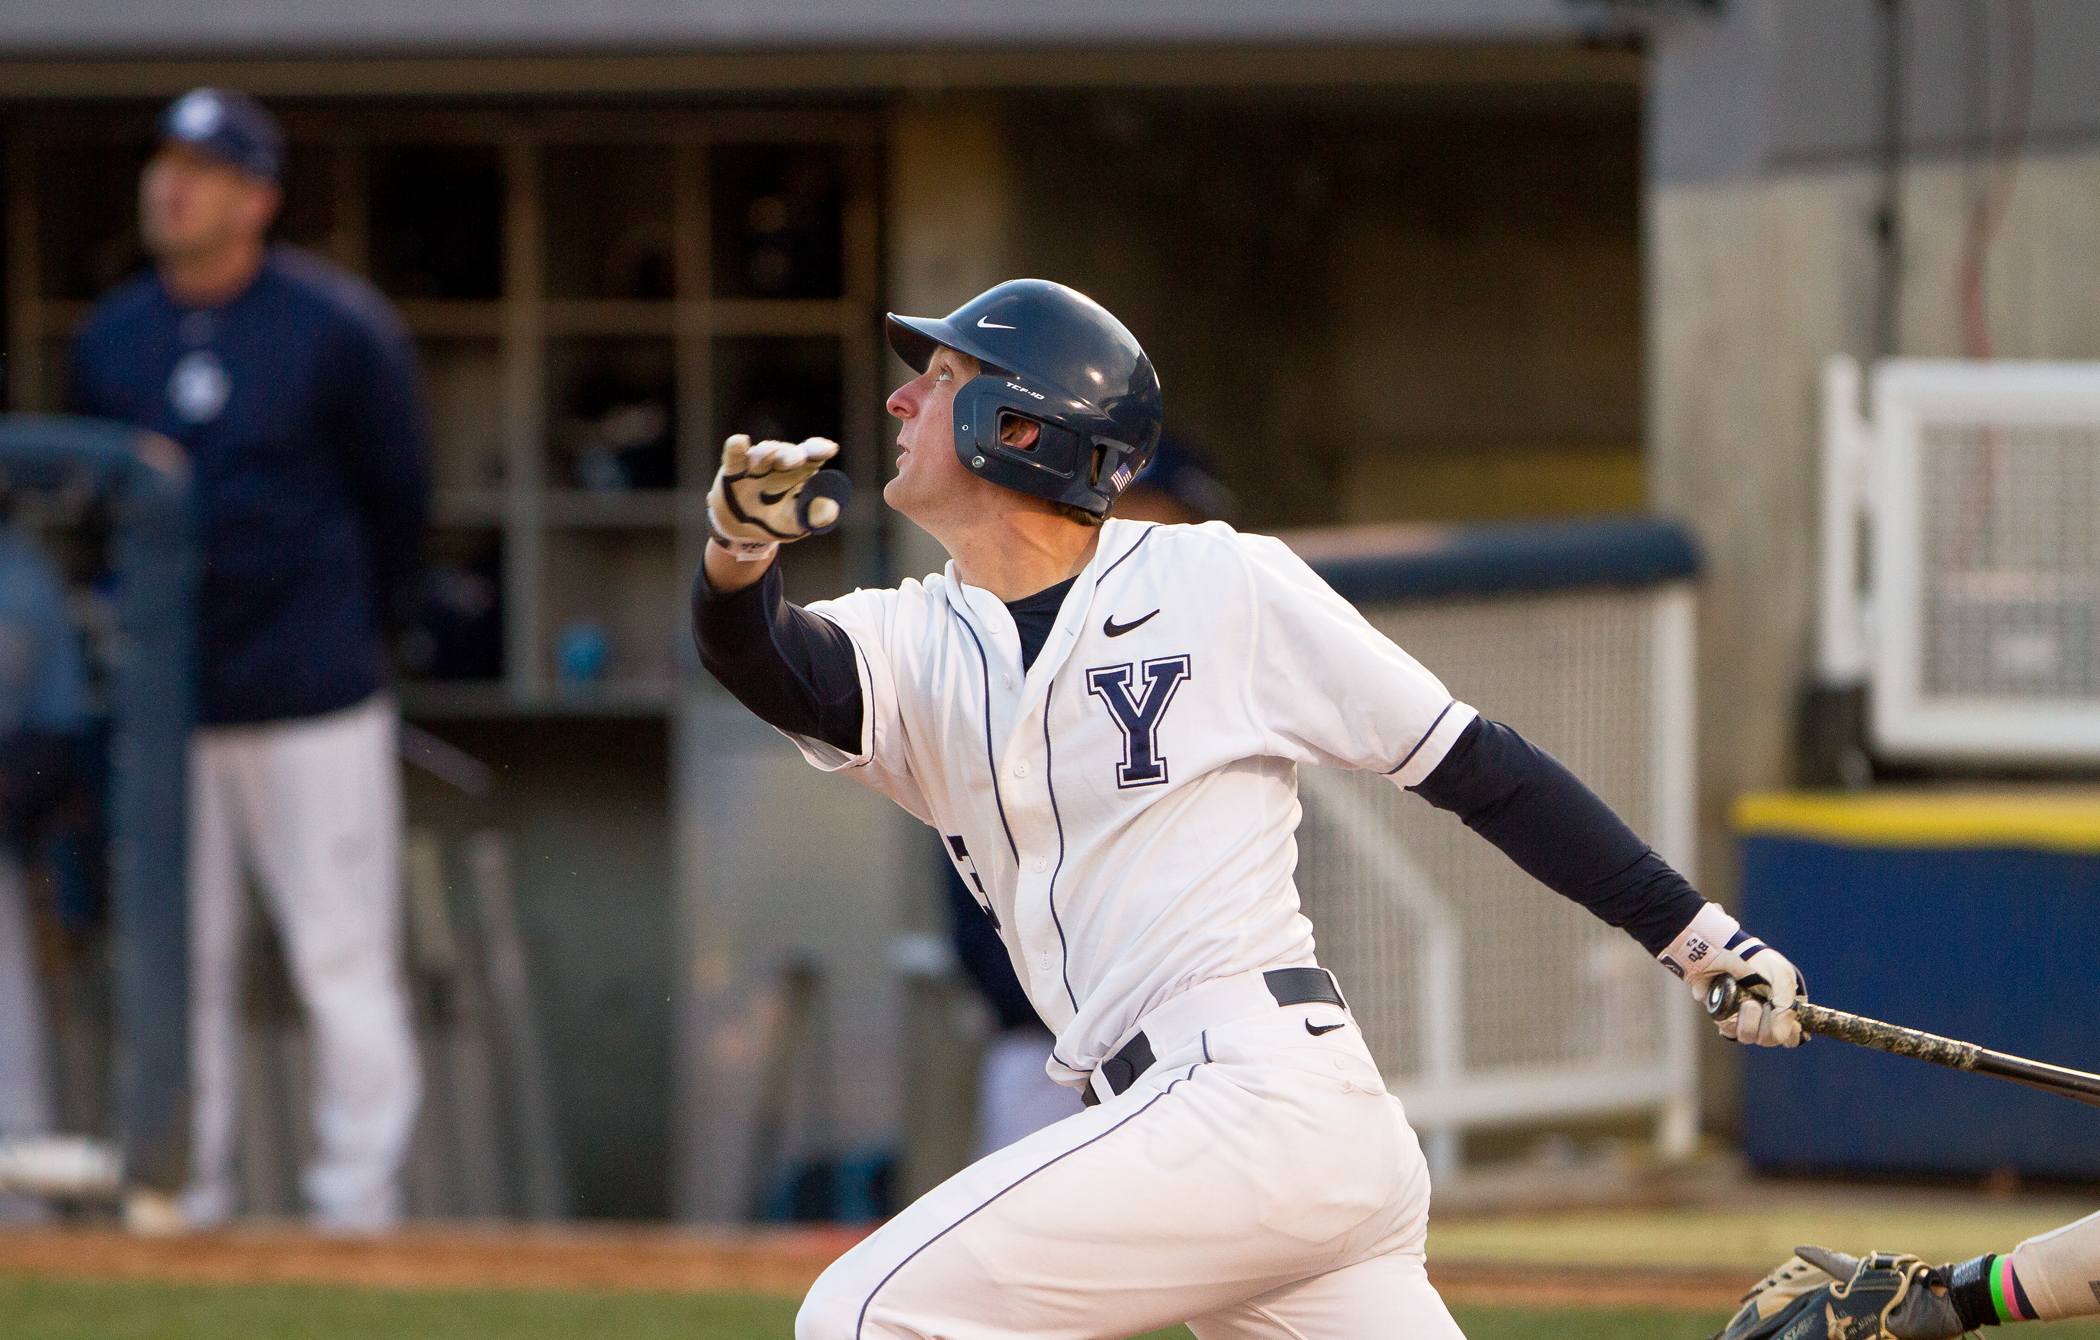 Brock Whitney follows through on a swing in a game against San Diego. Photo by Sarah Hill